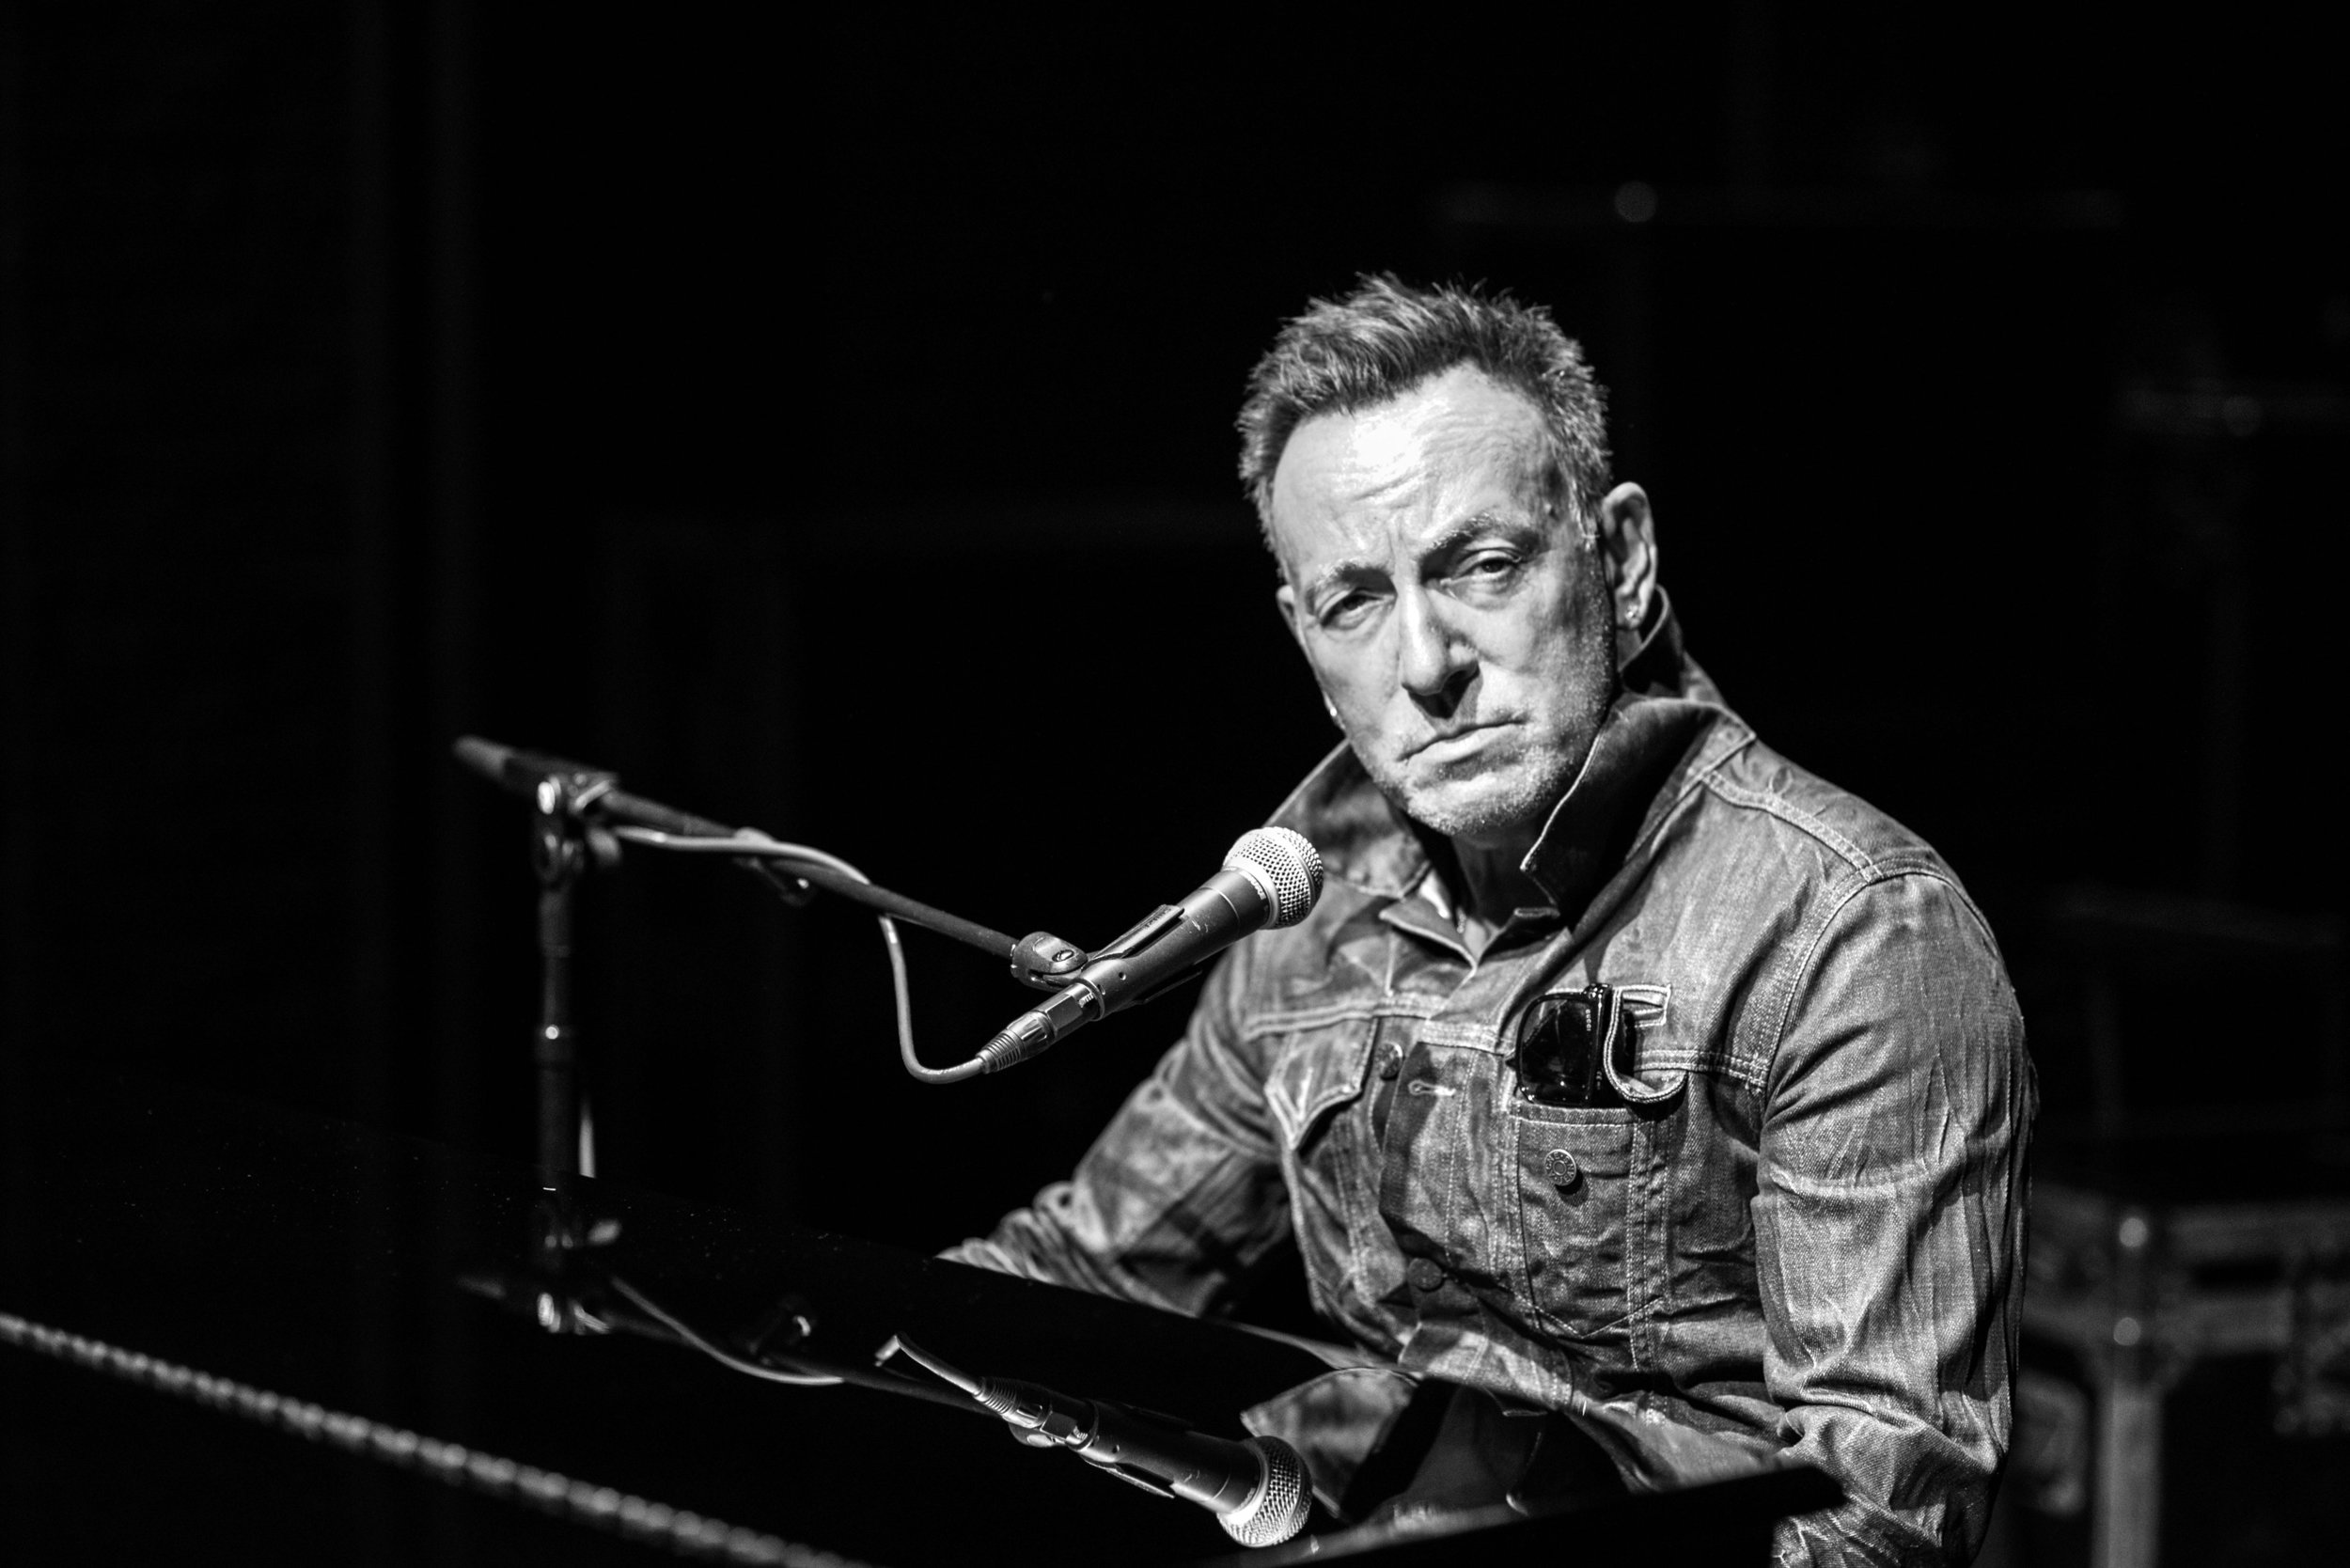 Bruce Springsteen, songwriter. 9/11.